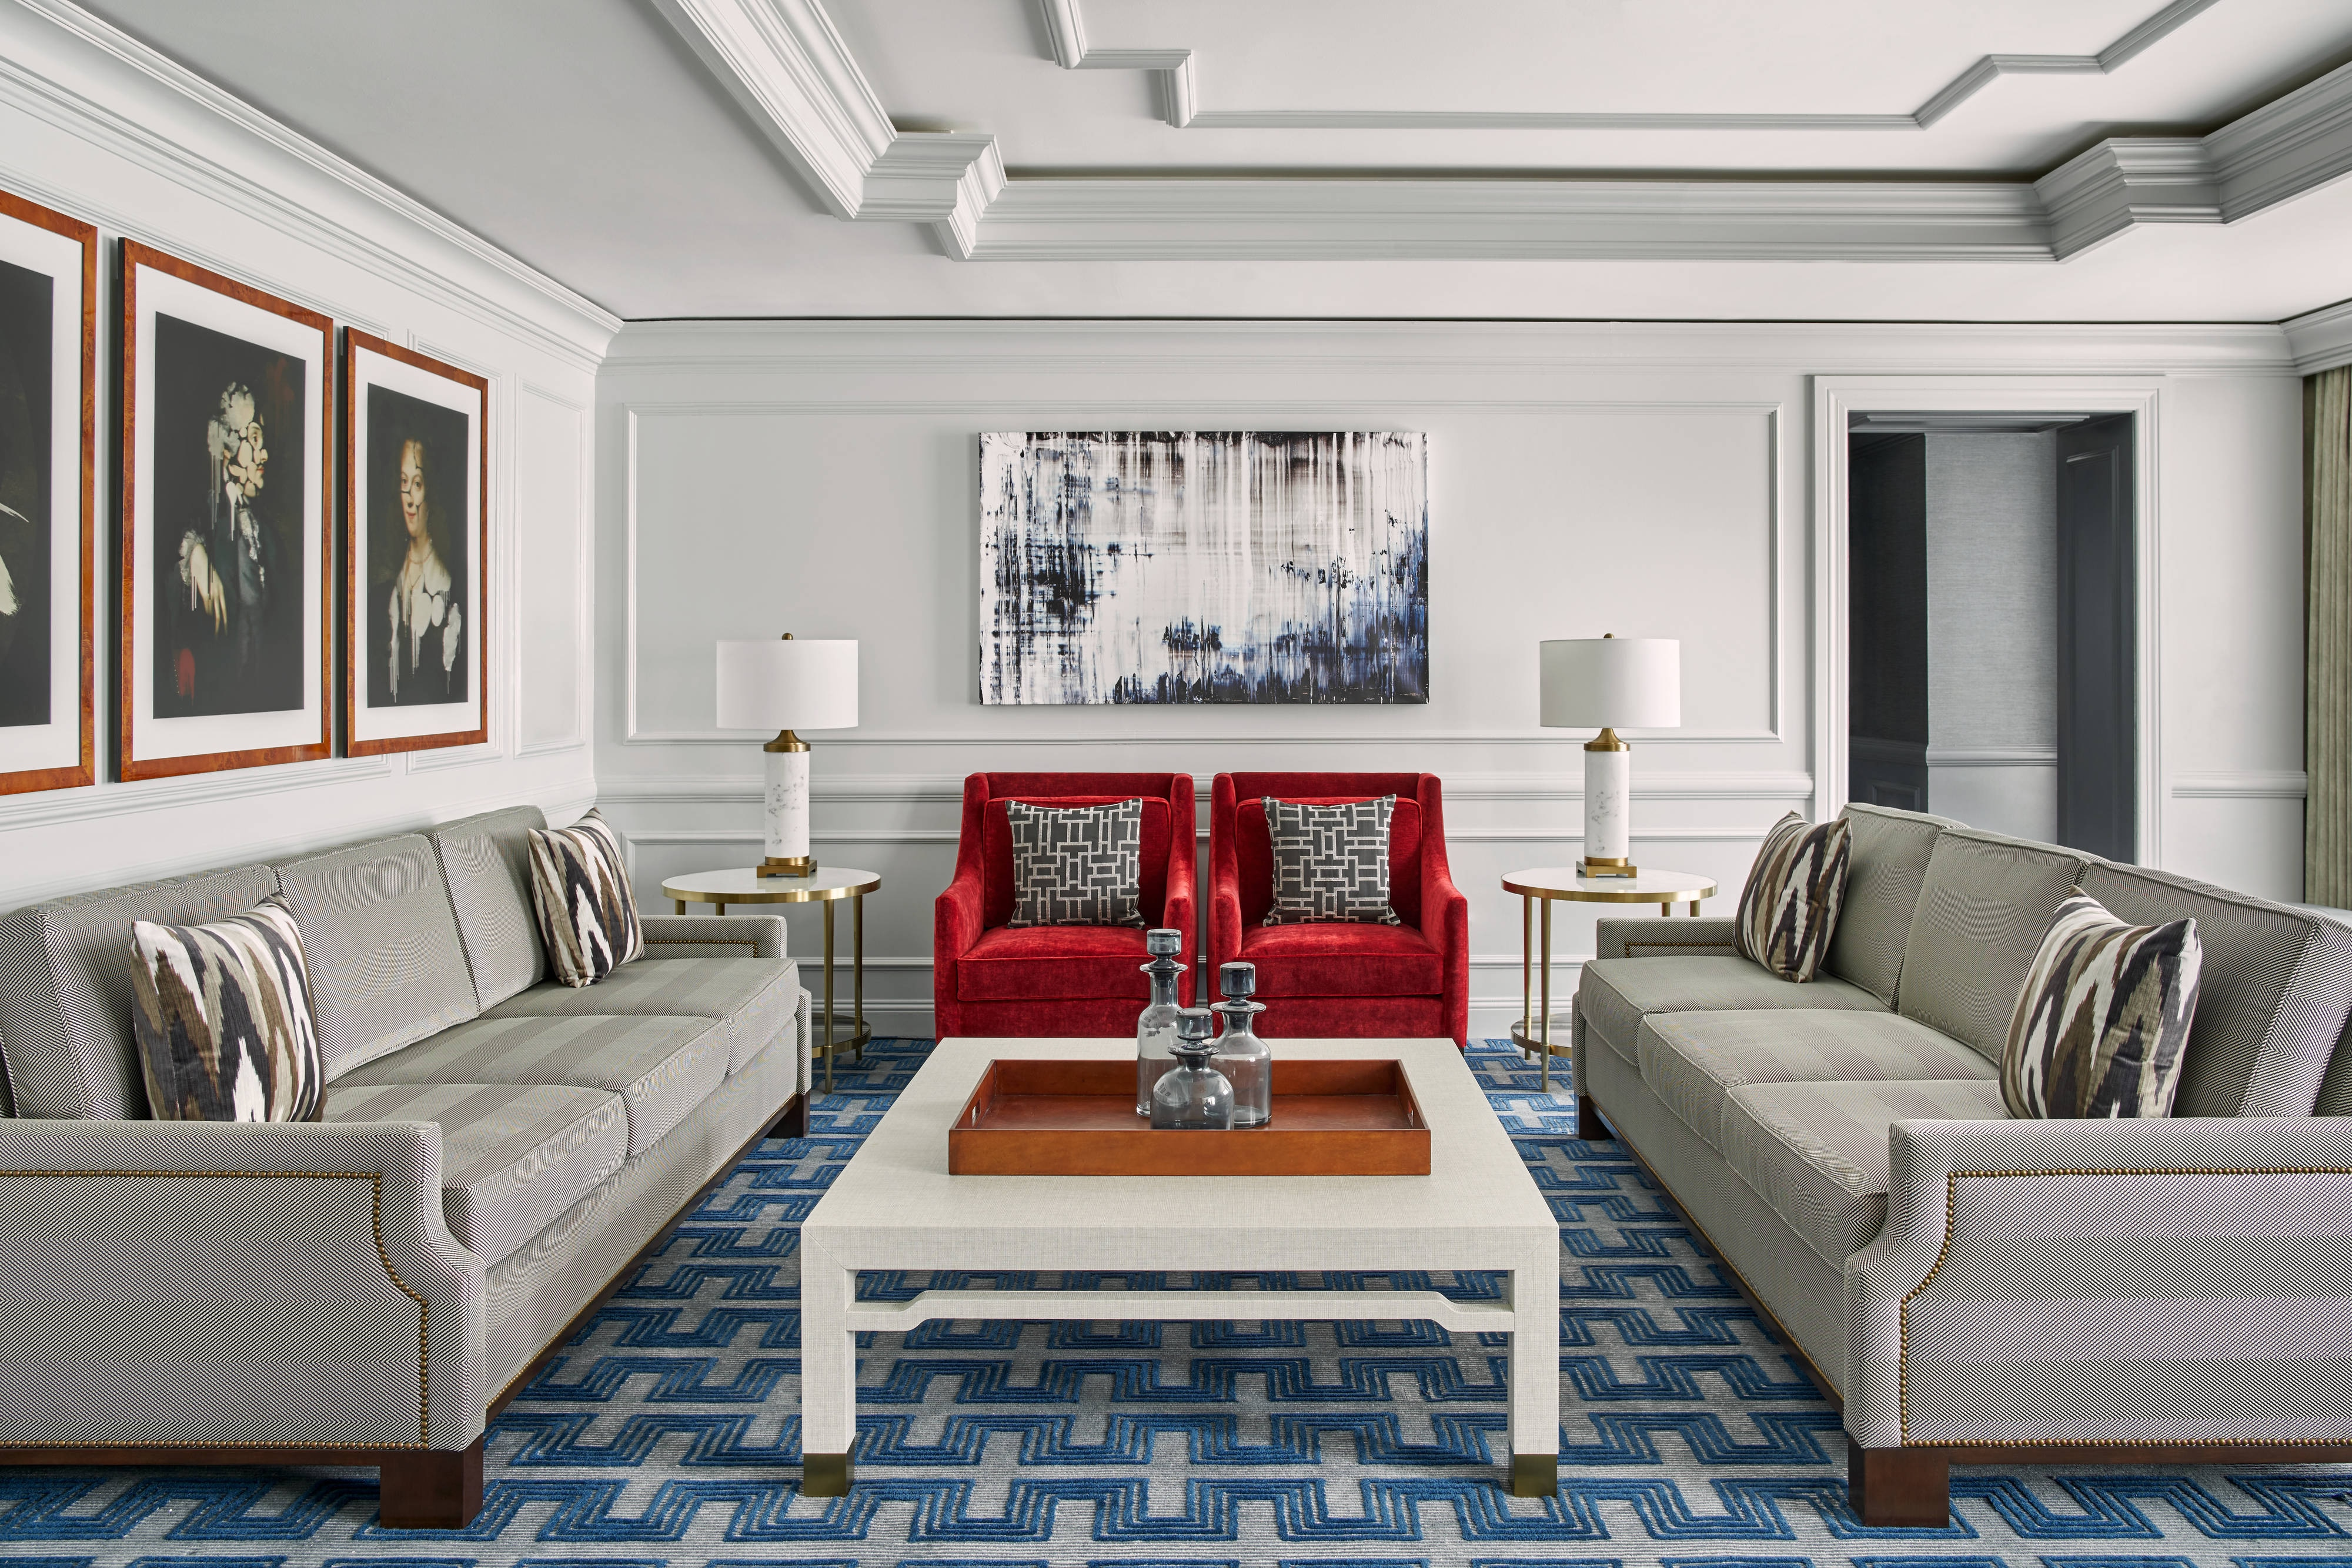 Living Room of The Ritz-Carlton Suite